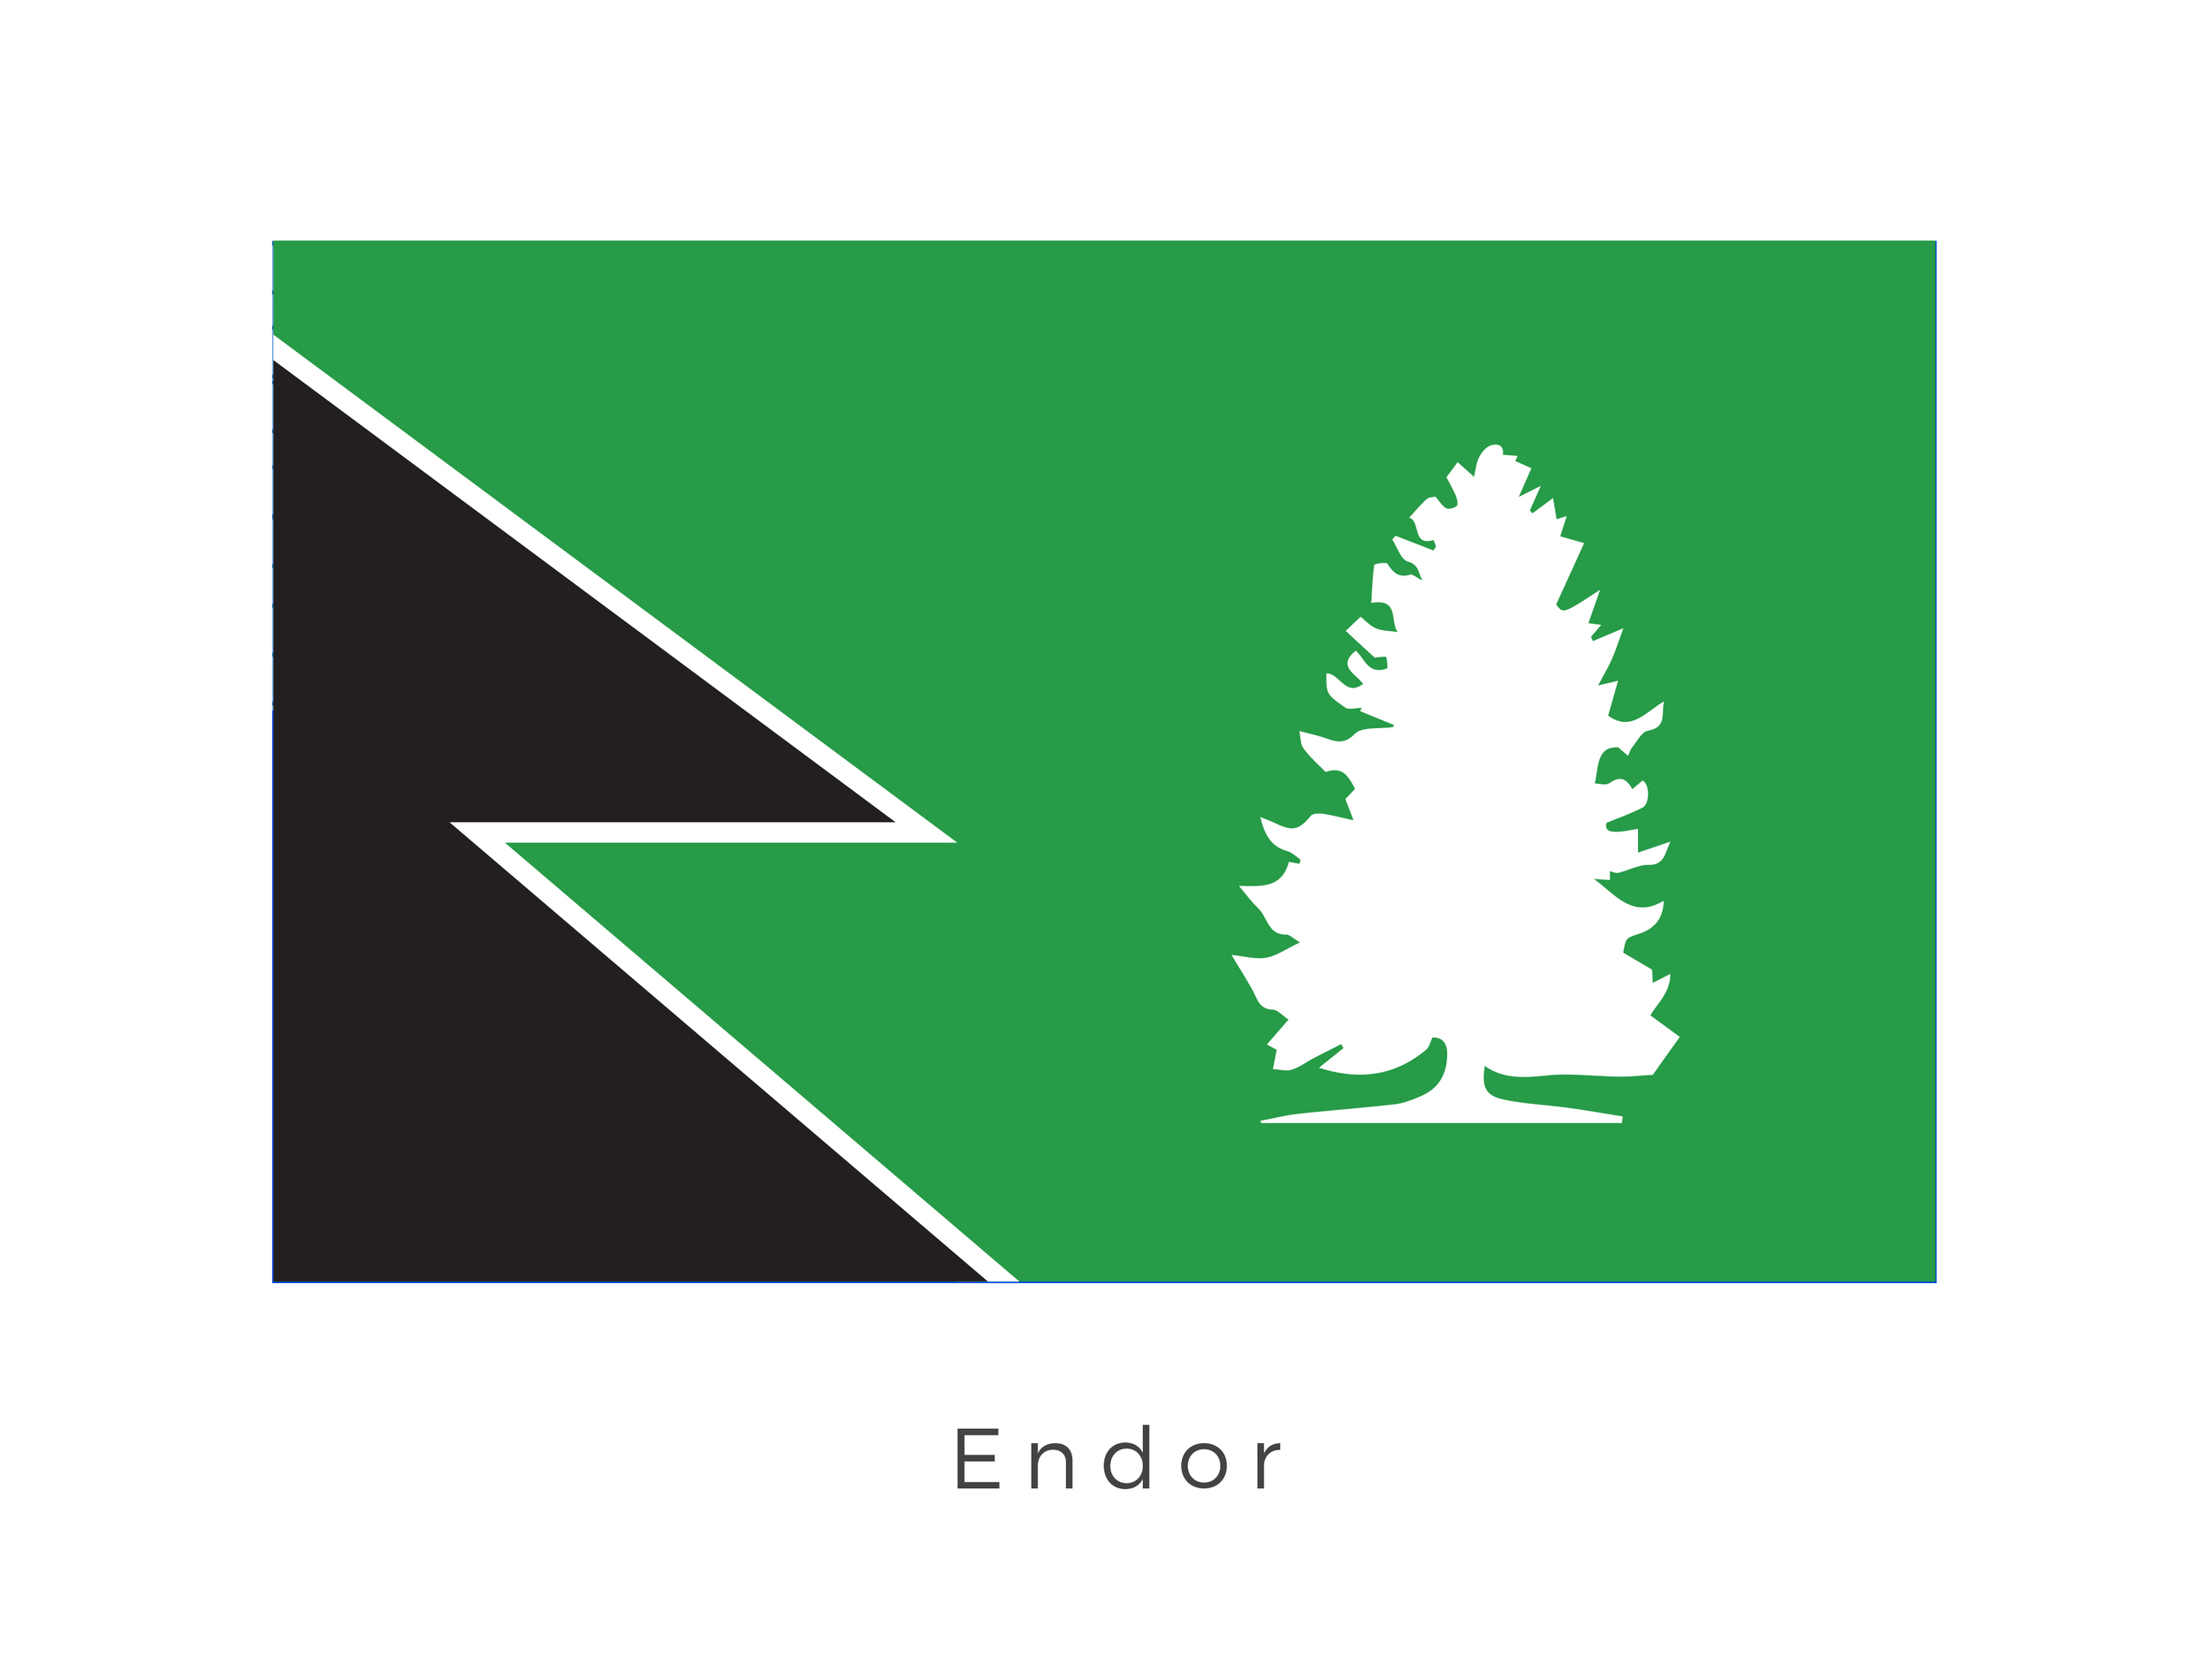 Endor  (also known as the Forest Moon of Endor and the Sanctuary Moon) was a small forested moon located in the Outer Rim Territories and the homeworld of the Ewok species. The green and black tribal graphics are that of the Ewok while the tree graphic represents the main major city: Bright Tree Village.